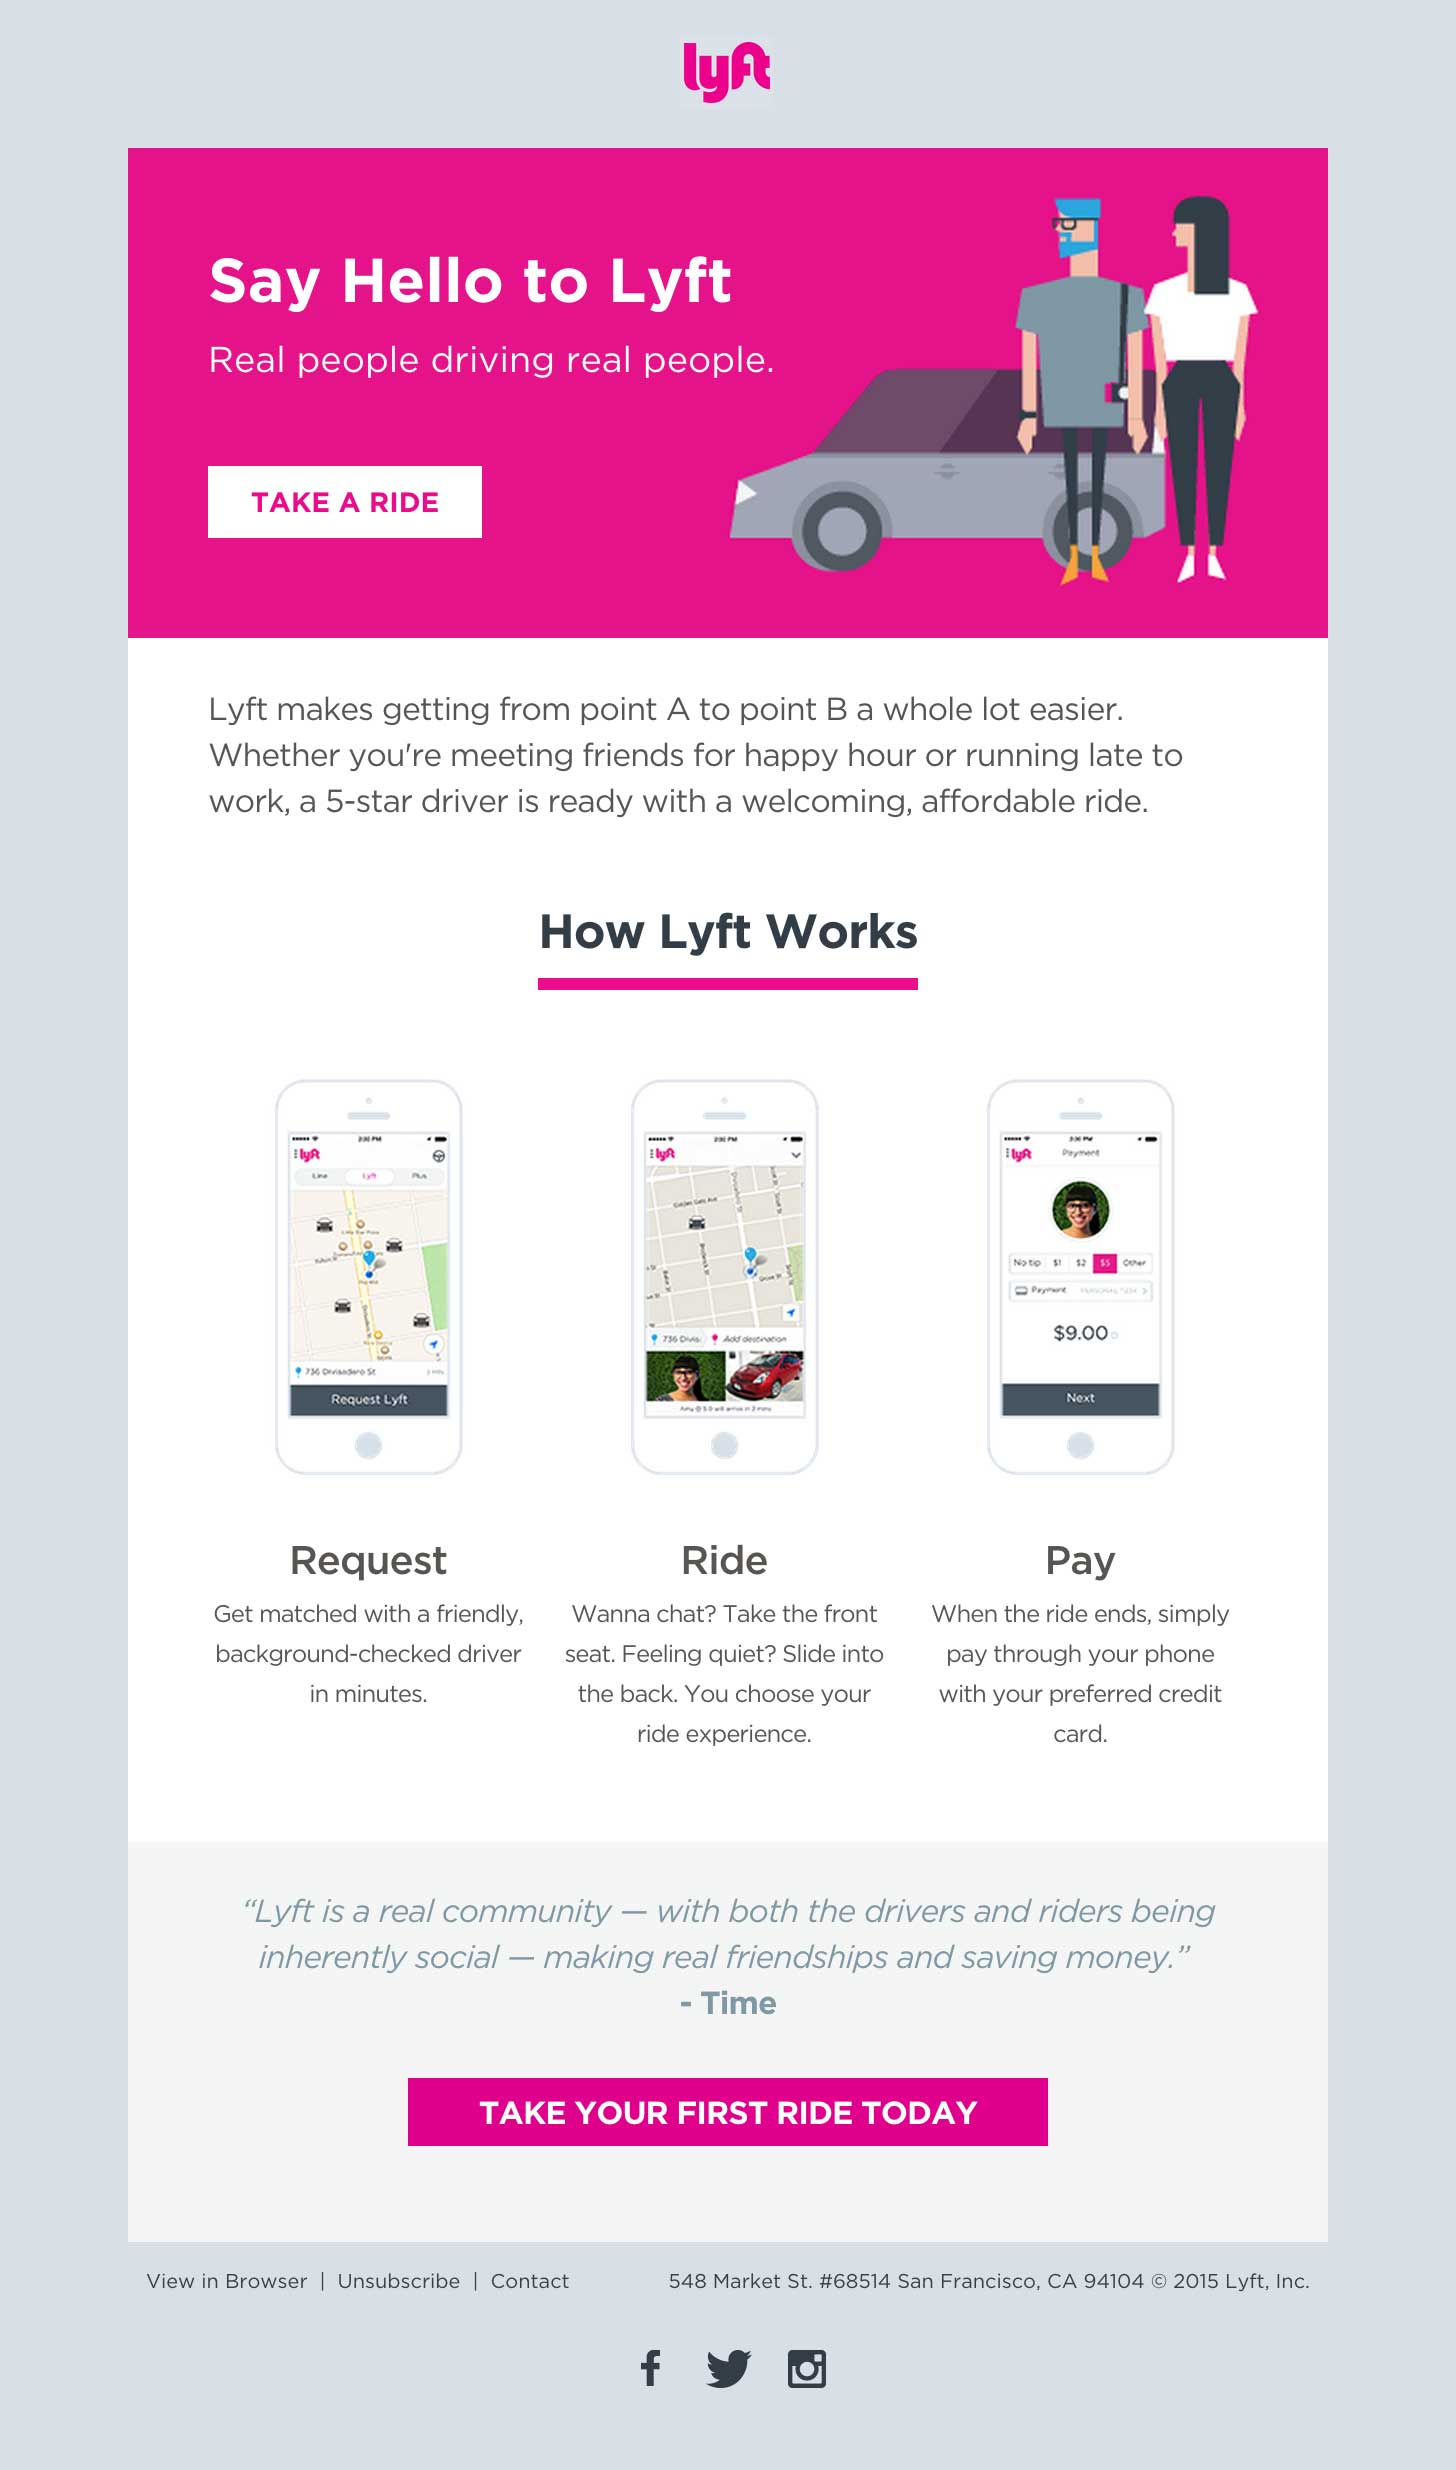 lyft-welcome-email Valentine S Day Newsletter Templates on valentine's day email marketing, valentine's day cards, valentine's day word templates, teacher valentine template, valentine's day food, valentine's day banner, valentine's day box ideas ipod, valentine's day mailbox templates, valentine's day box templates, valentine flower template, valentine's day 2014, valentine's day borders, valentine's day calendar, valentine's day shop, valentine's day sudoku, valentine's day logo design, valentine's day ideas for kindergarteners, valentine menu template, valentine's day word wall, valentine's ipod template,